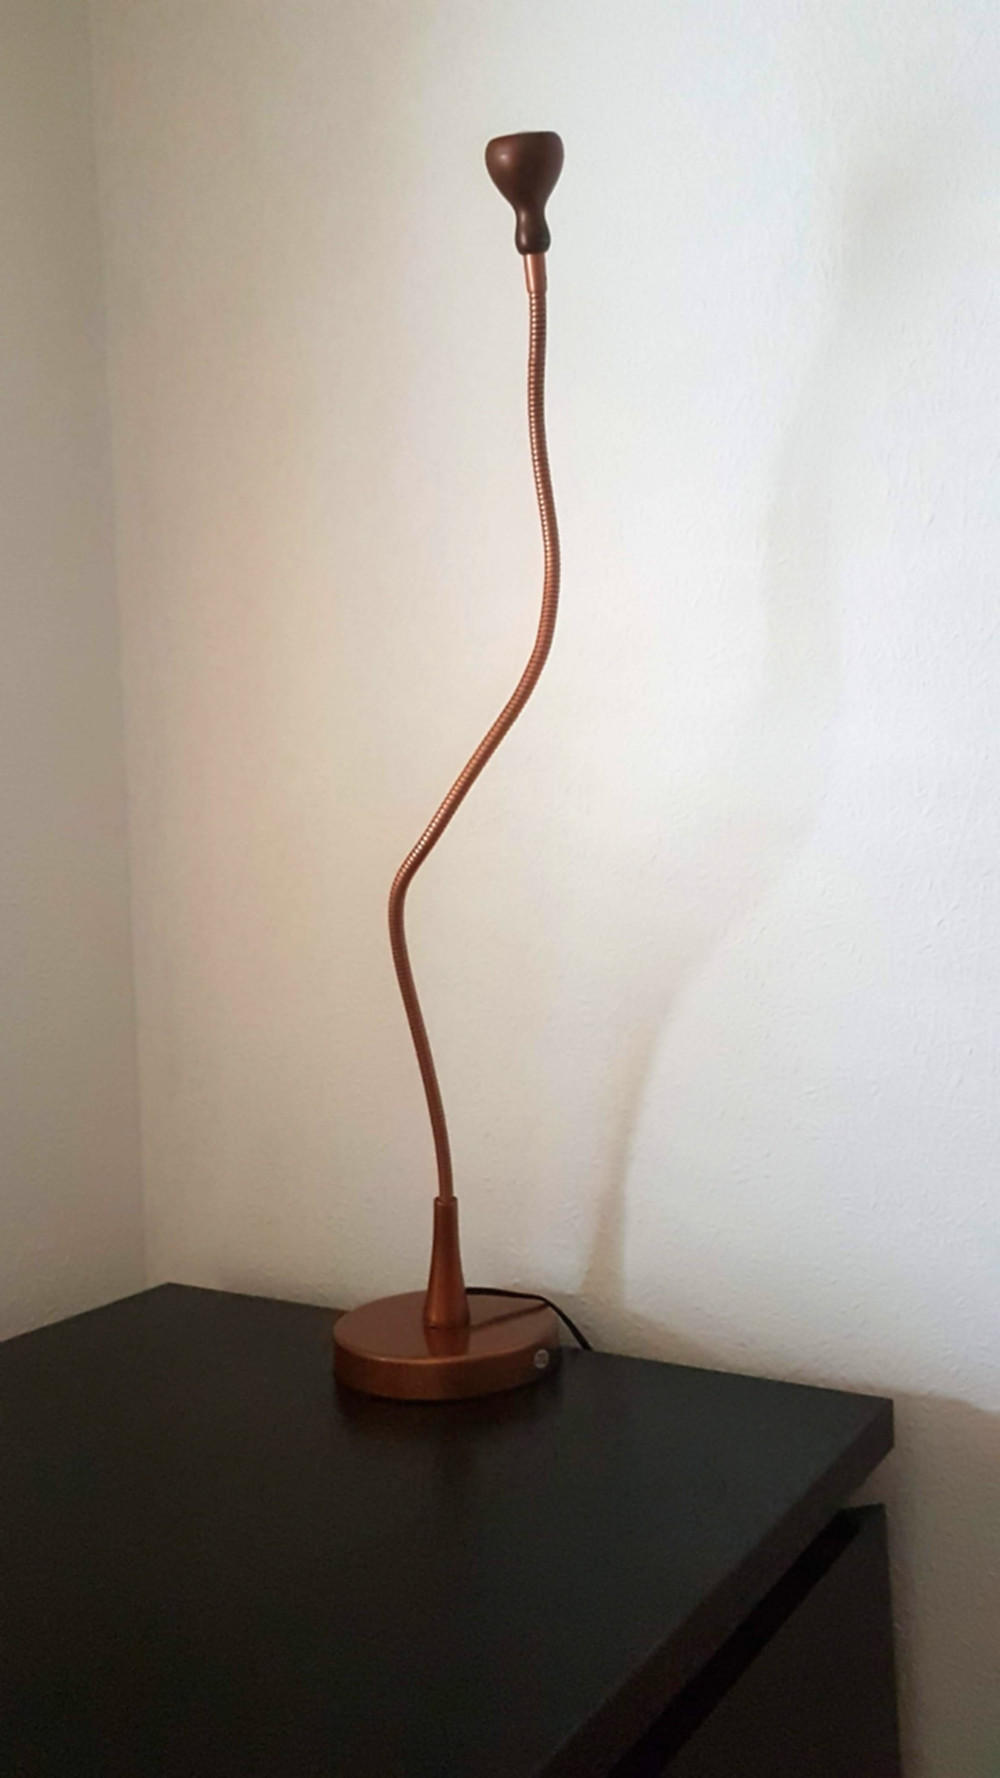 Ikea Copper work lamp